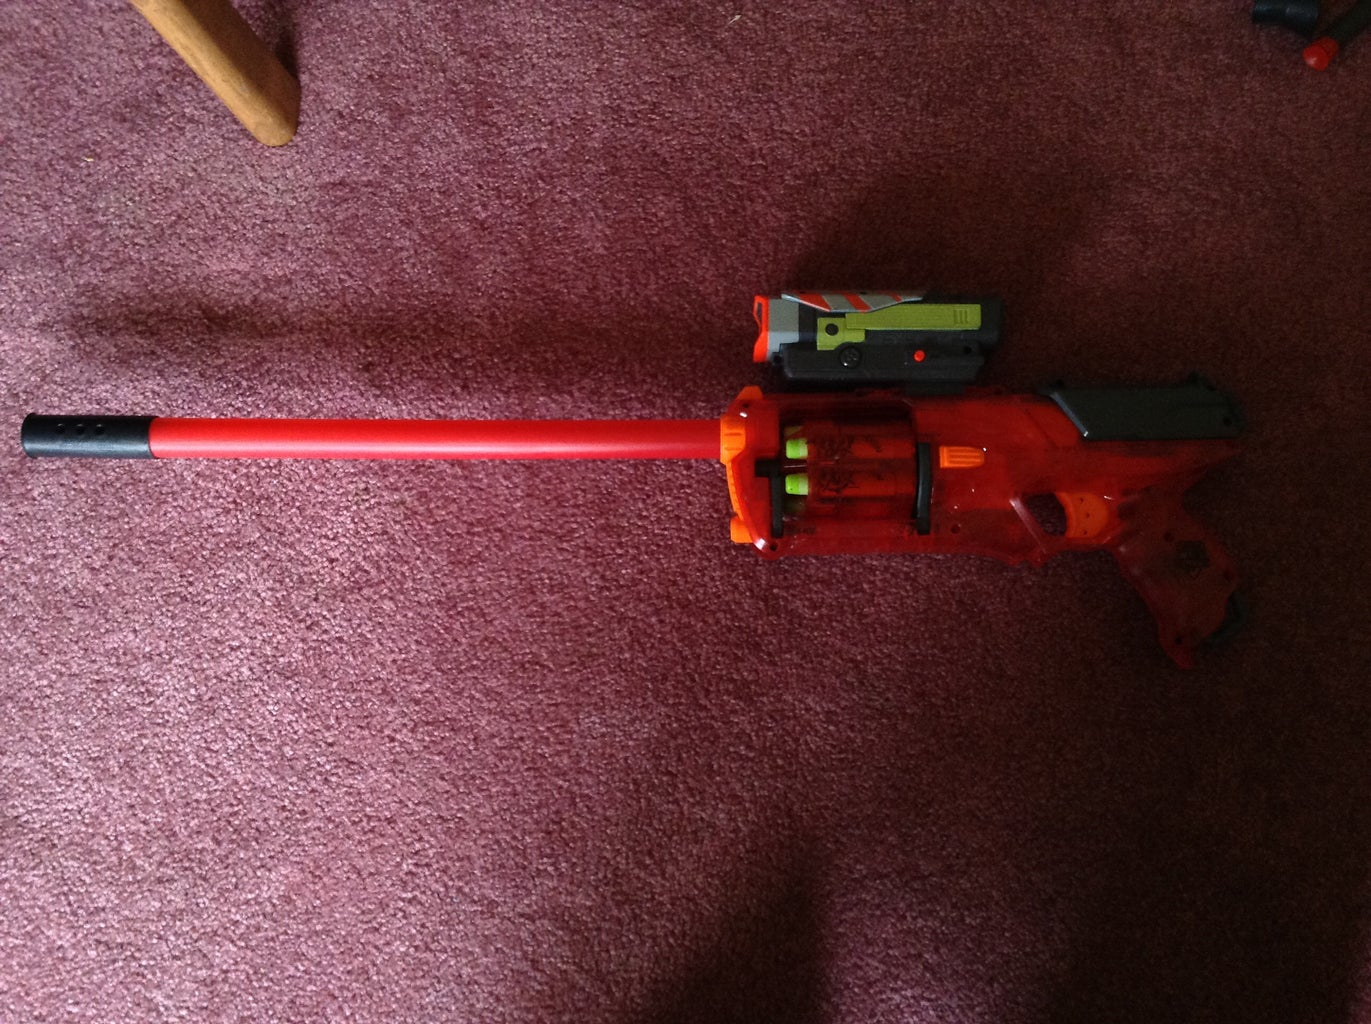 Add the Nitron Scope to the Top and Load the Darts.